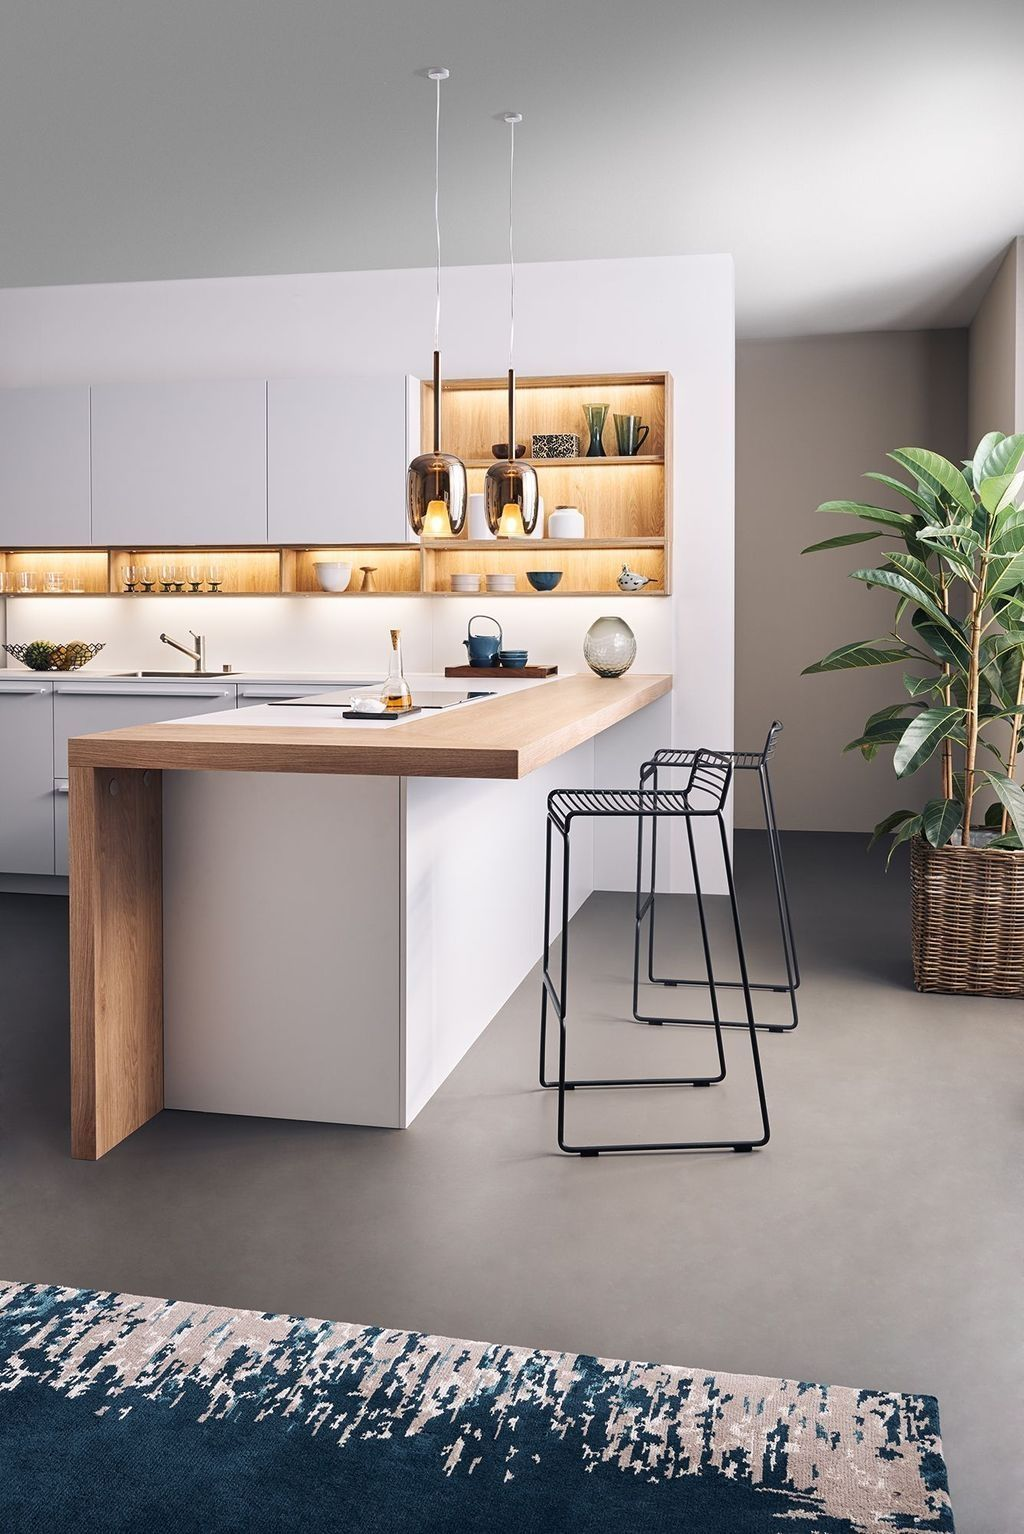 20+ Inspiring Modern Scandinavian Kitchen Design Ideas Modern kitchens may be efficiently kitted out and look seamlessly well designed with nice materials fixtures and finishes - but [\u2026] #kitchenremodelsmall